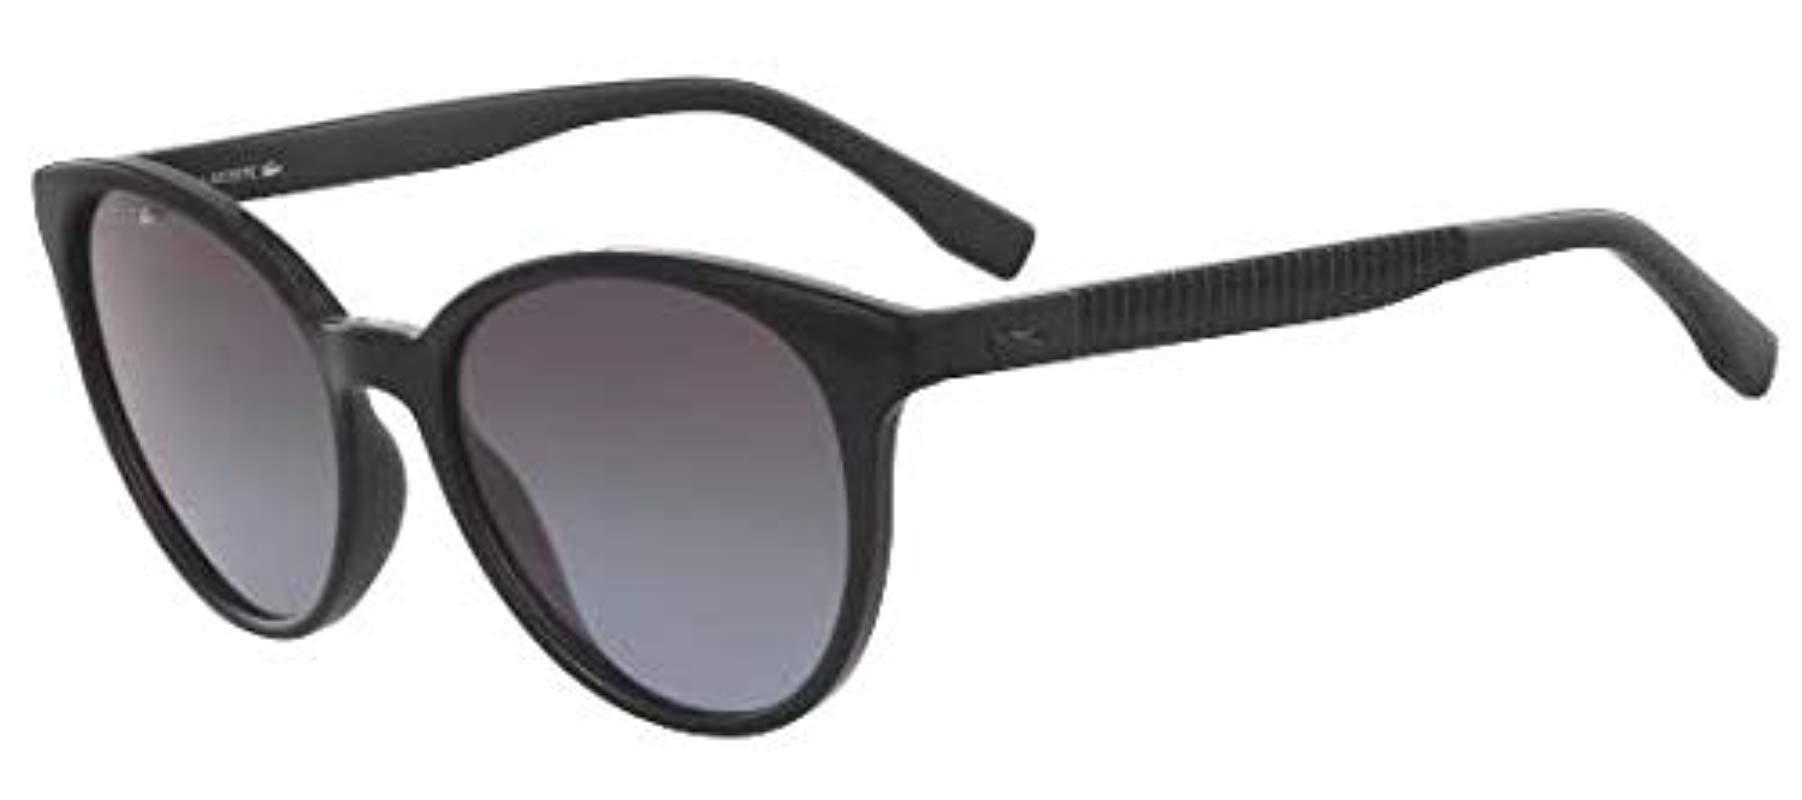 d49b4527be7b Lyst - Lacoste L887s Round Sunglasses